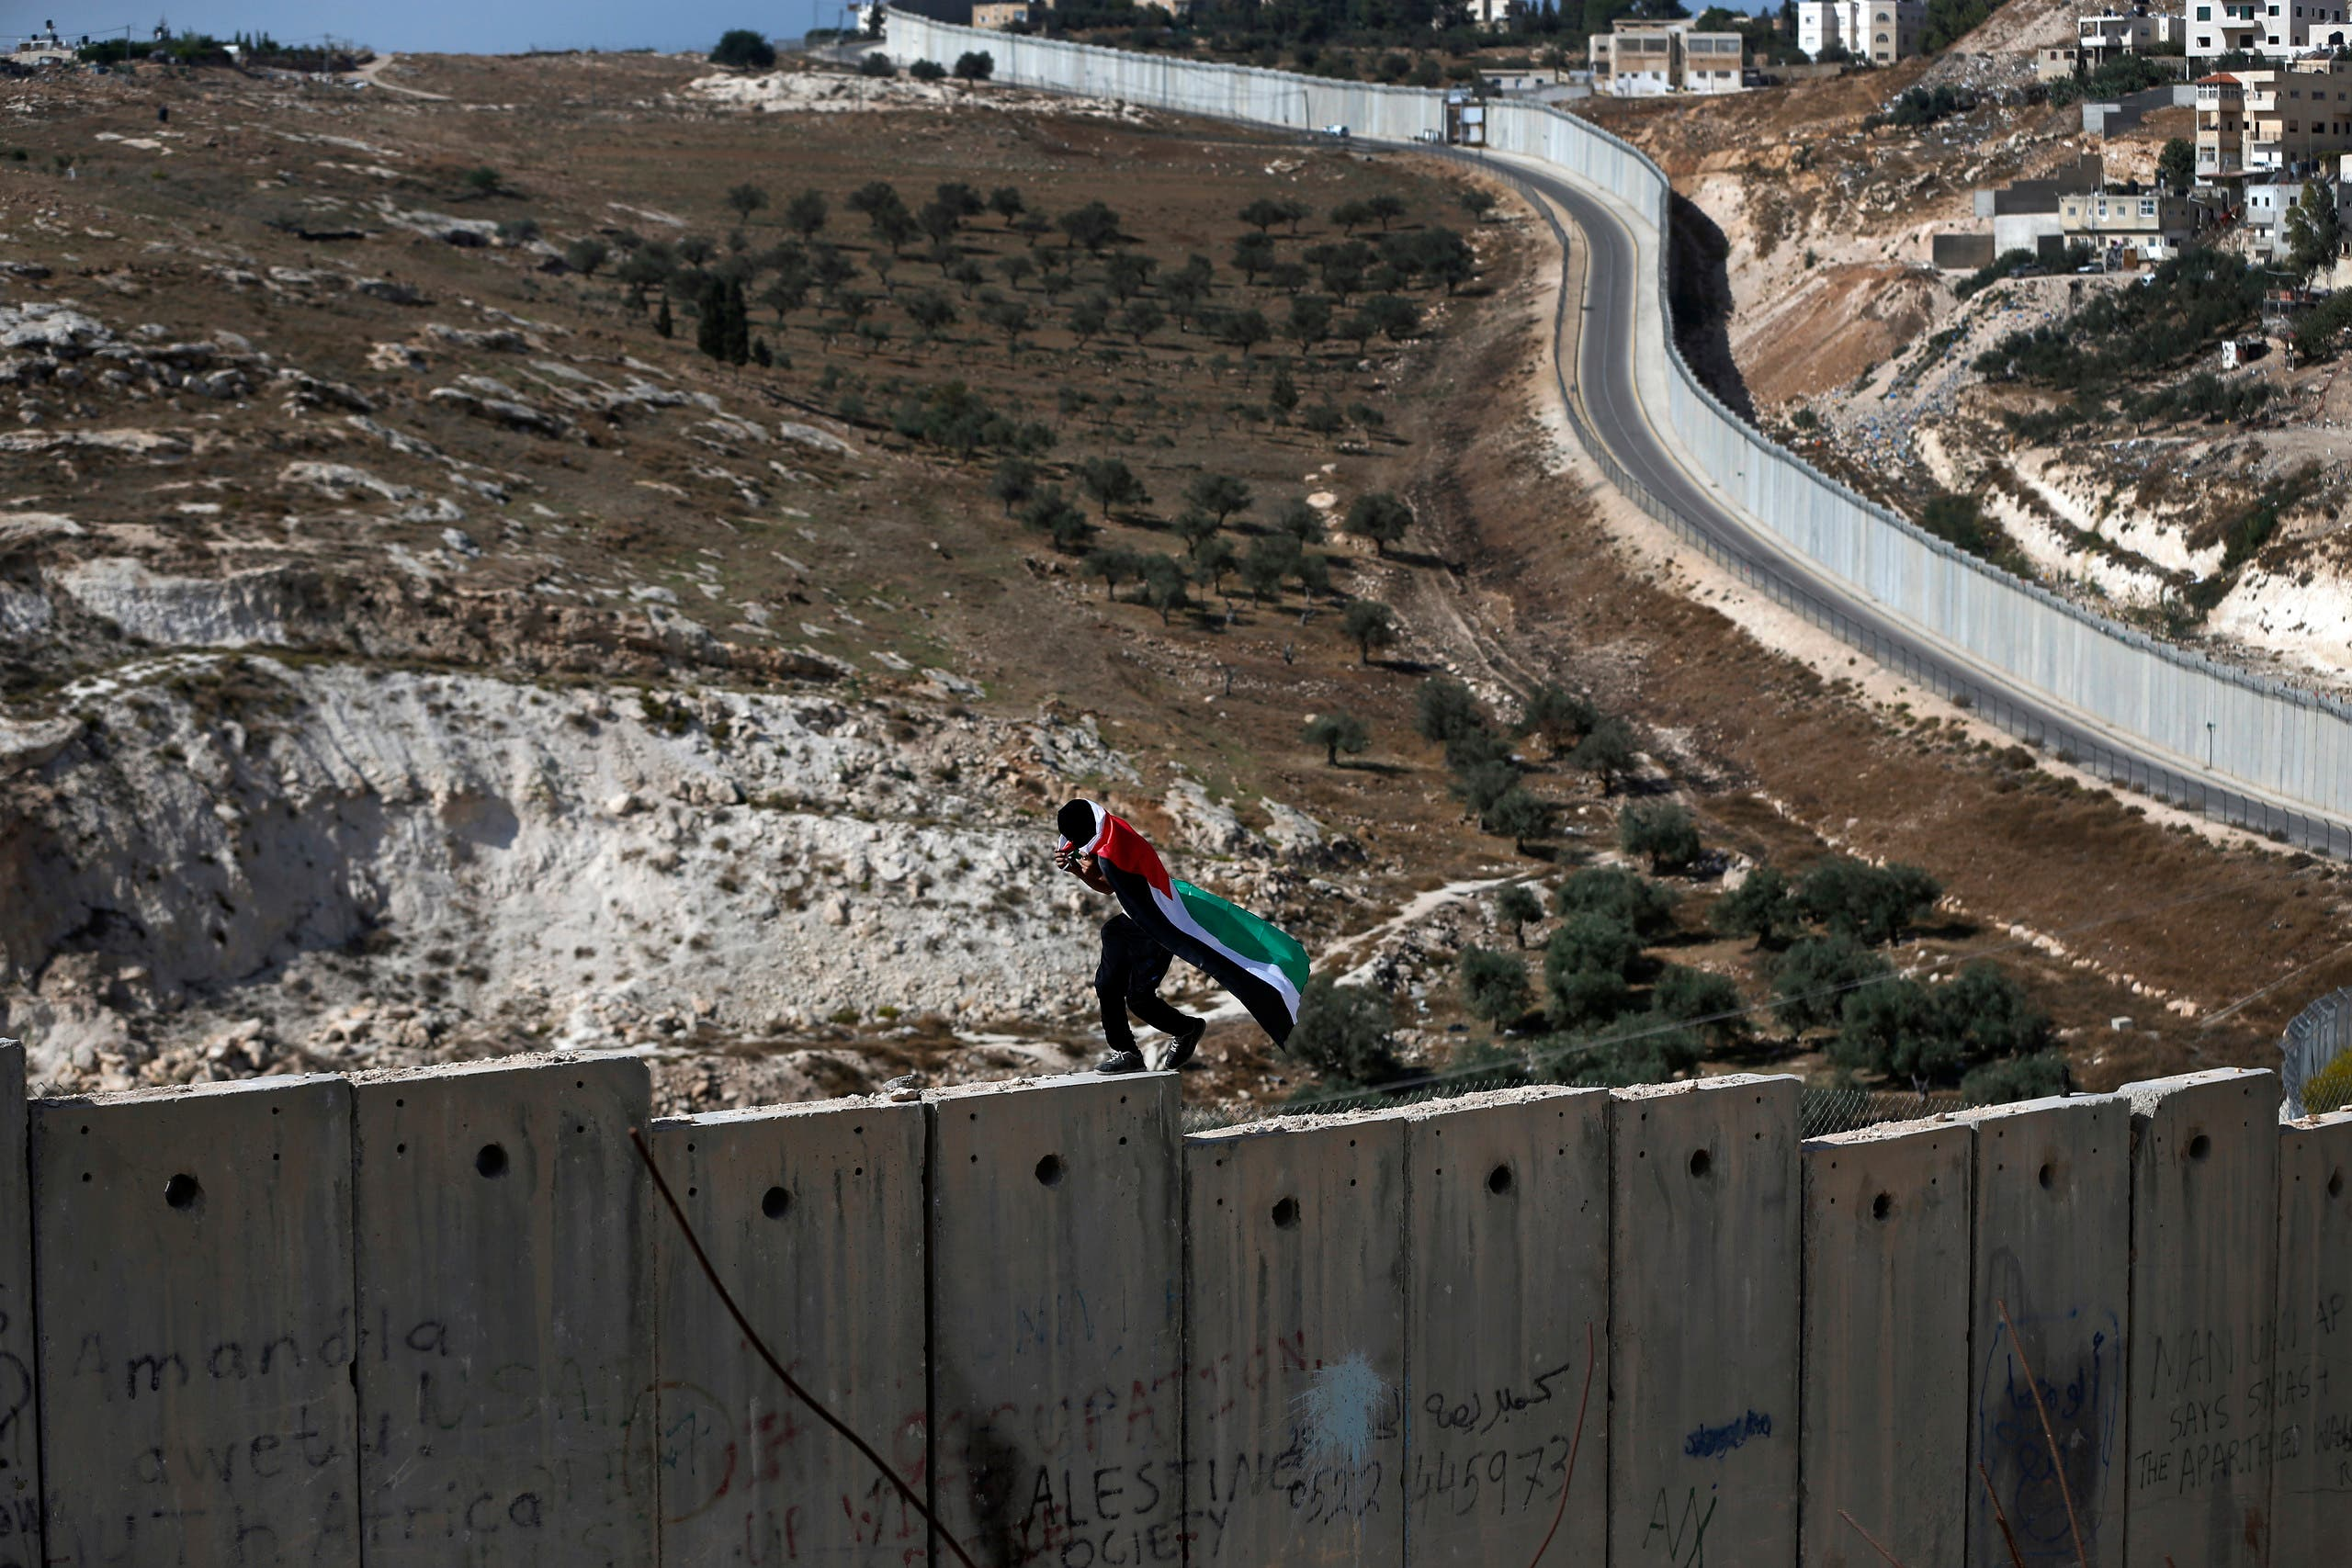 A Palestinian covered with national flag walks on top of the Israeli wall separating the West Bank city of Abu Dis from east Jerusalem. (File photo: AFP)